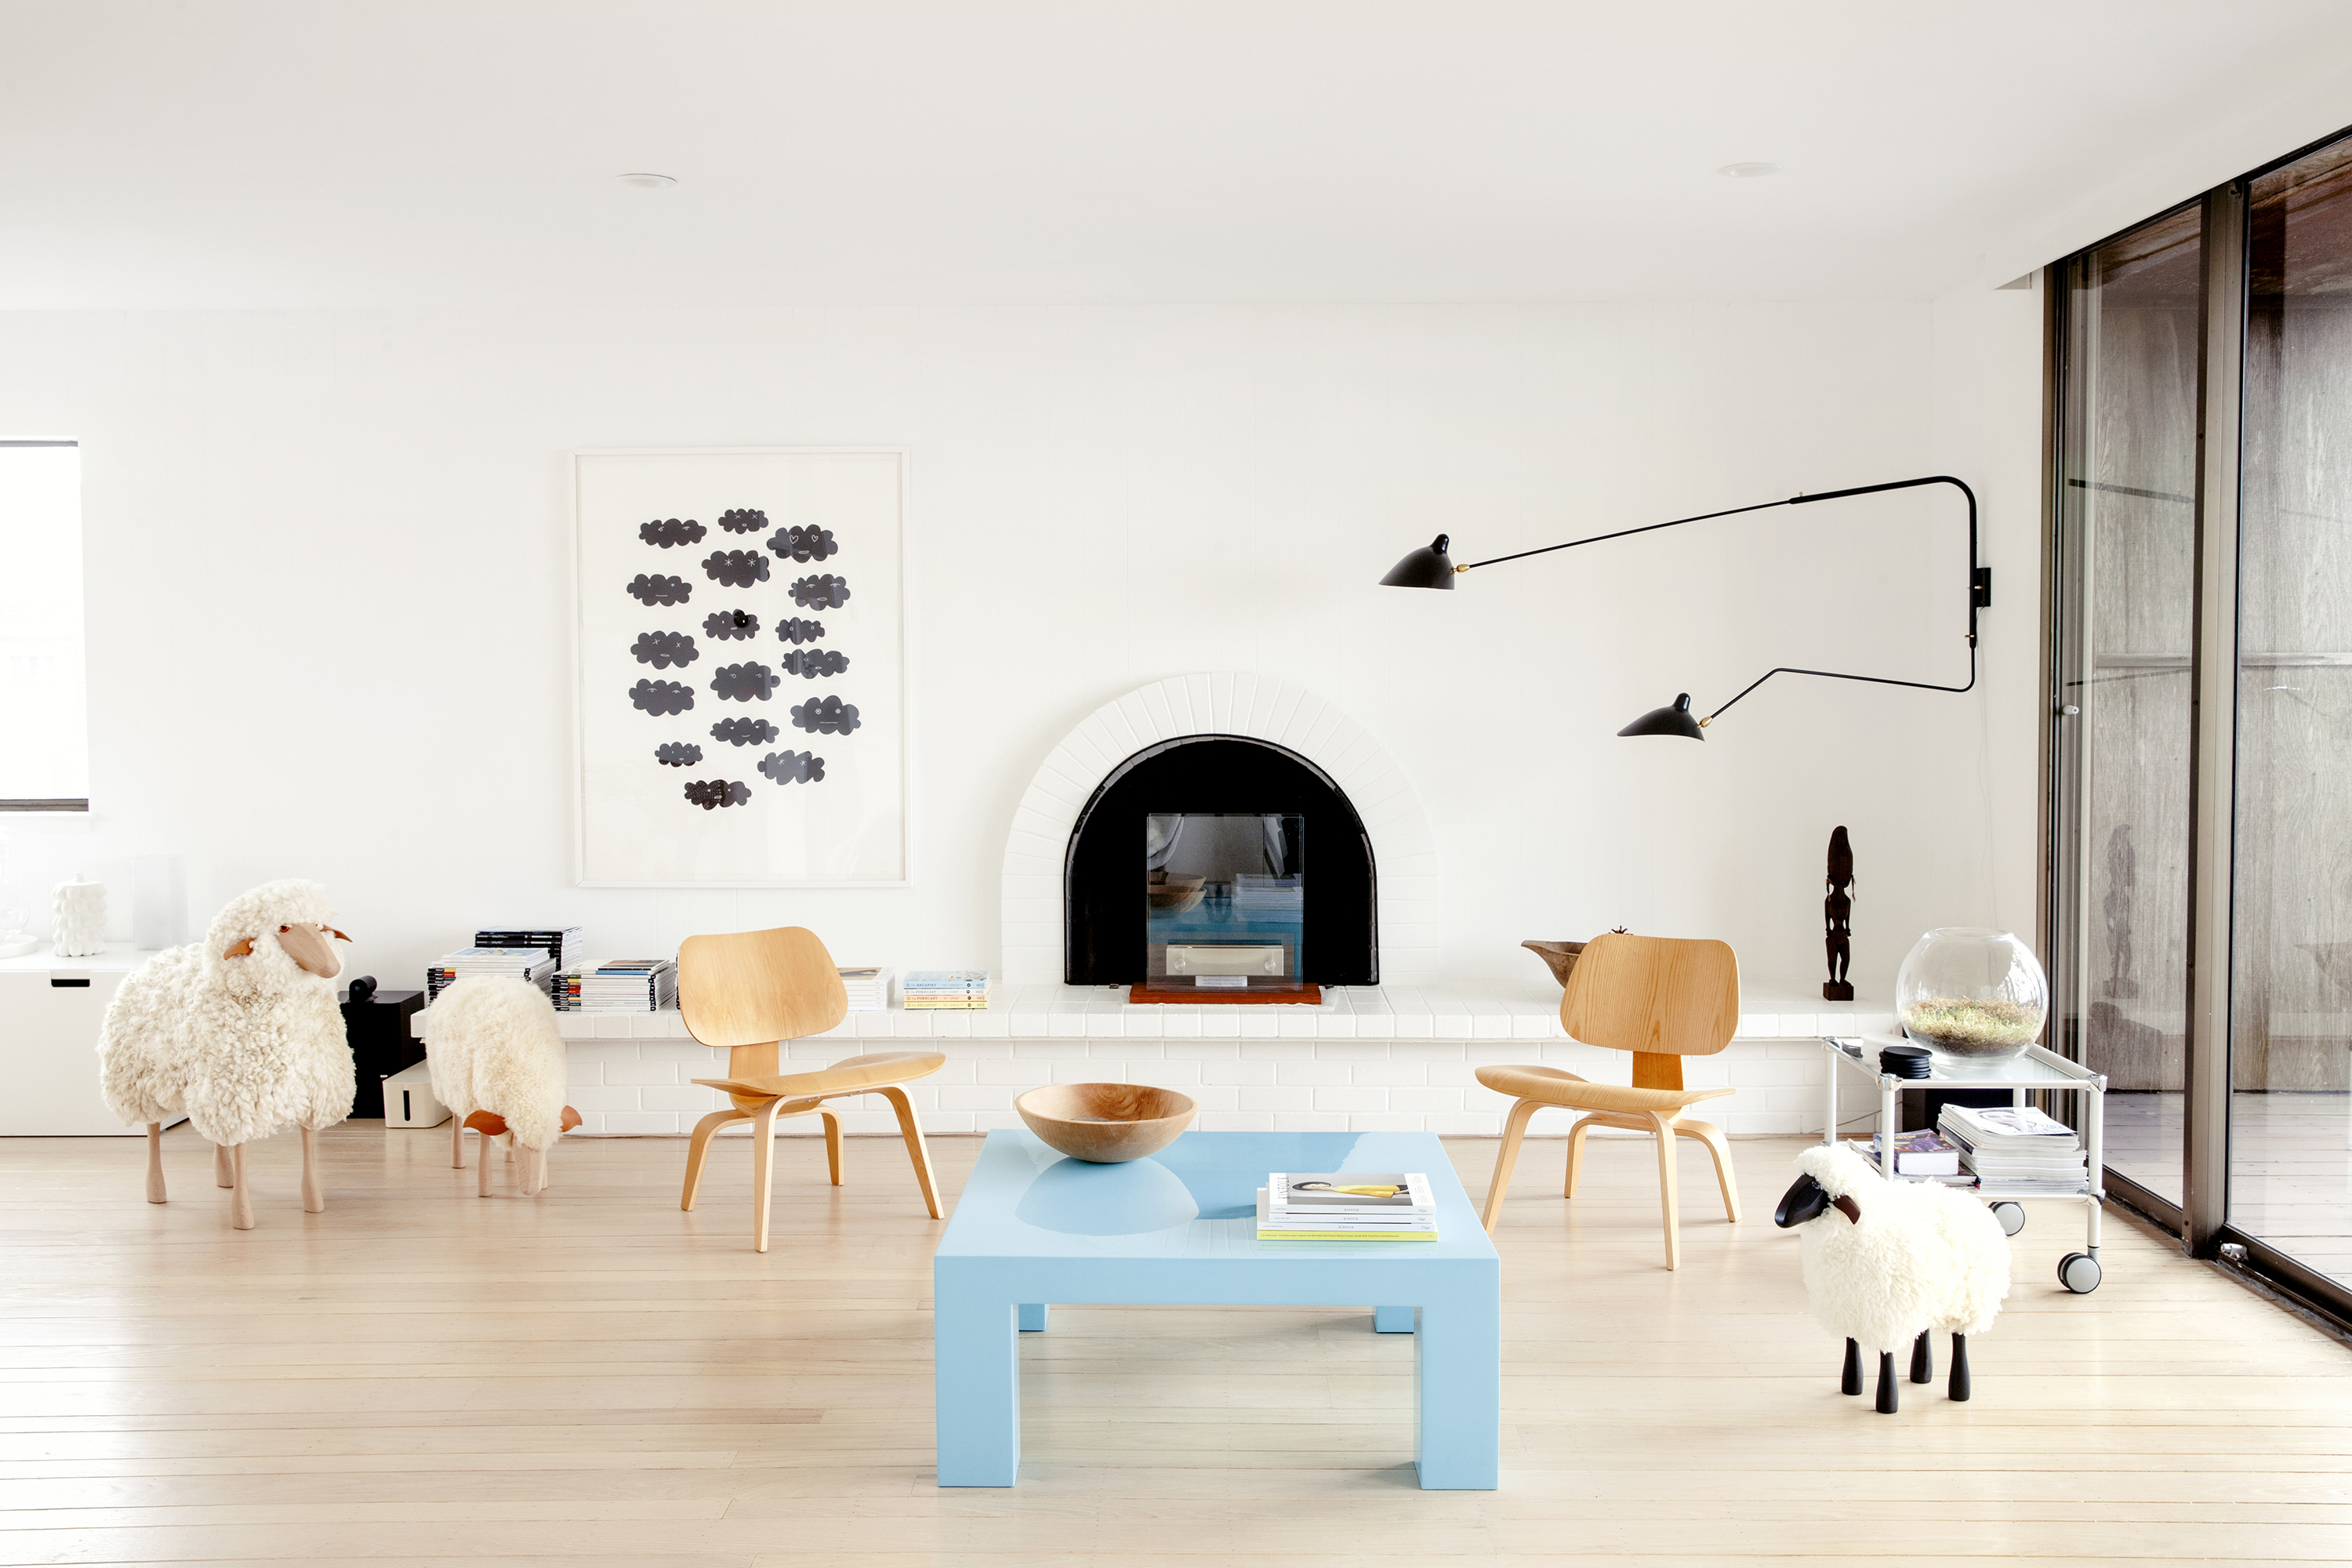 A living area with a blue table, chairs, lamps, and multiple sheep dolls. The floor is hardwood. There is a work of art on the wall.